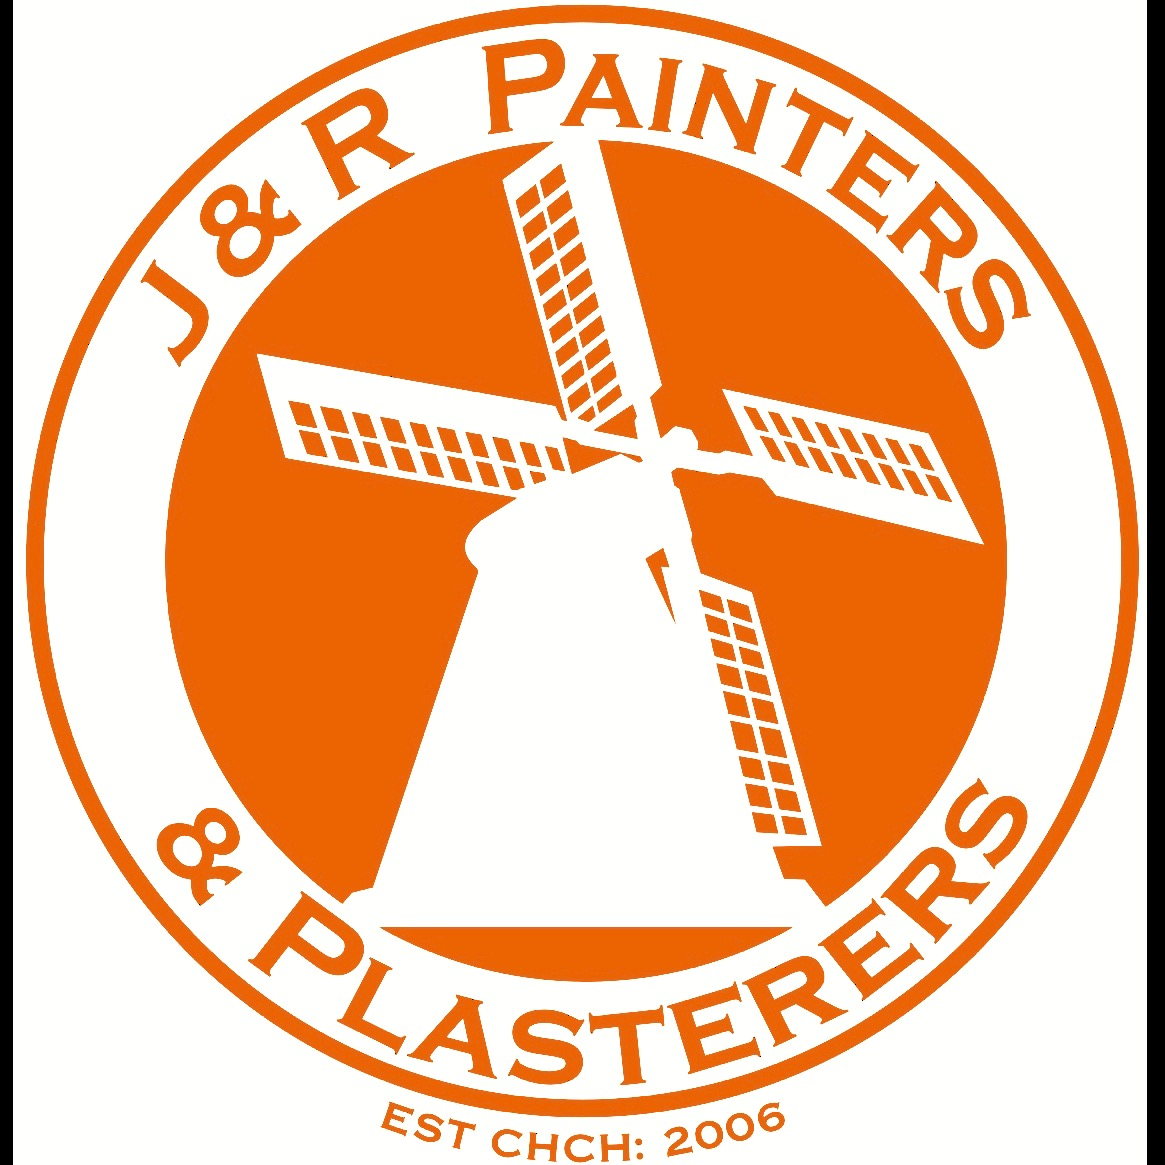 J & R Painters and Plasterers